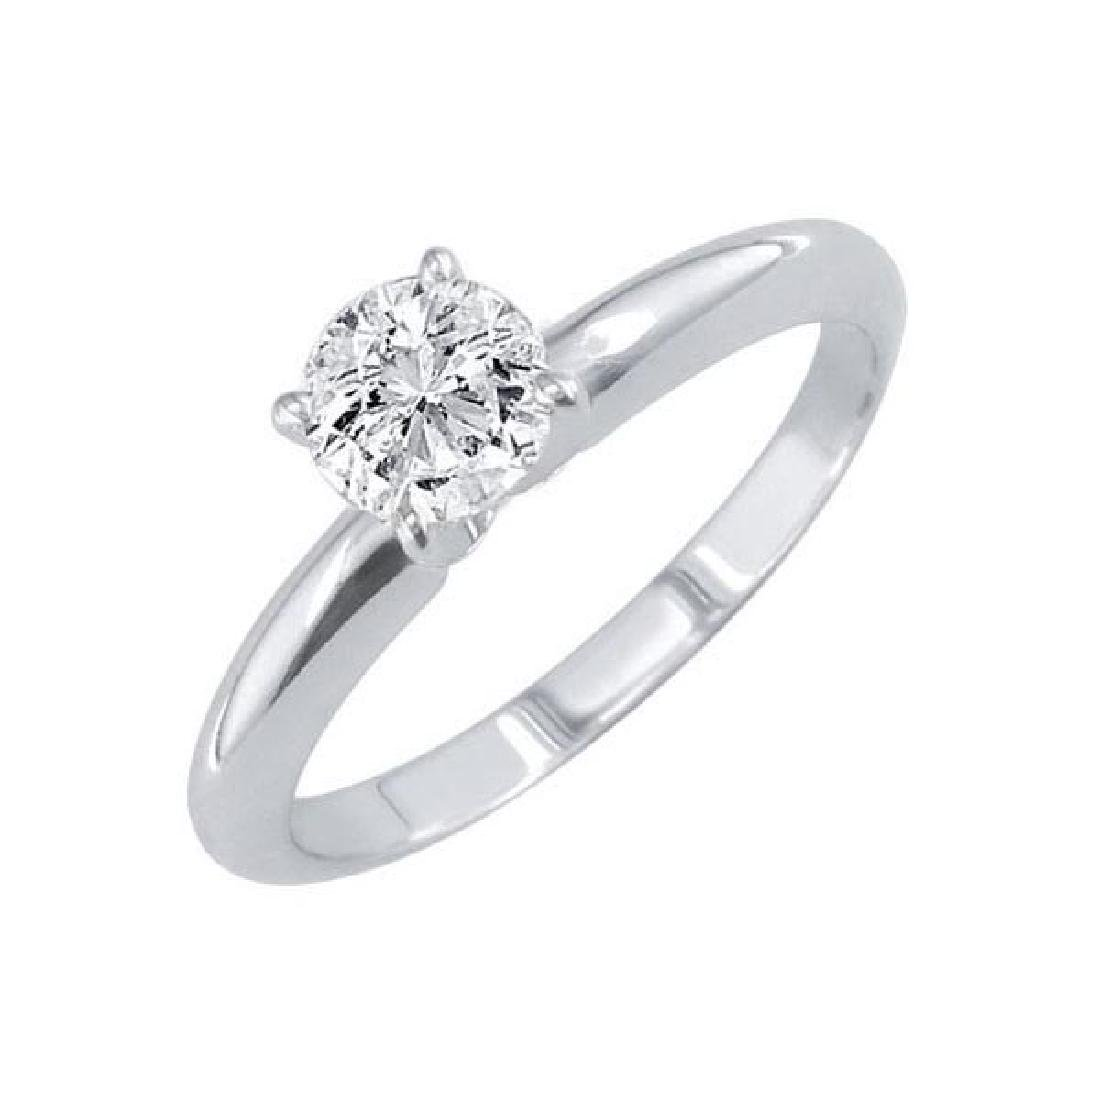 Certified 0.8 CTW Round Diamond Solitaire 14k Ring D/SI